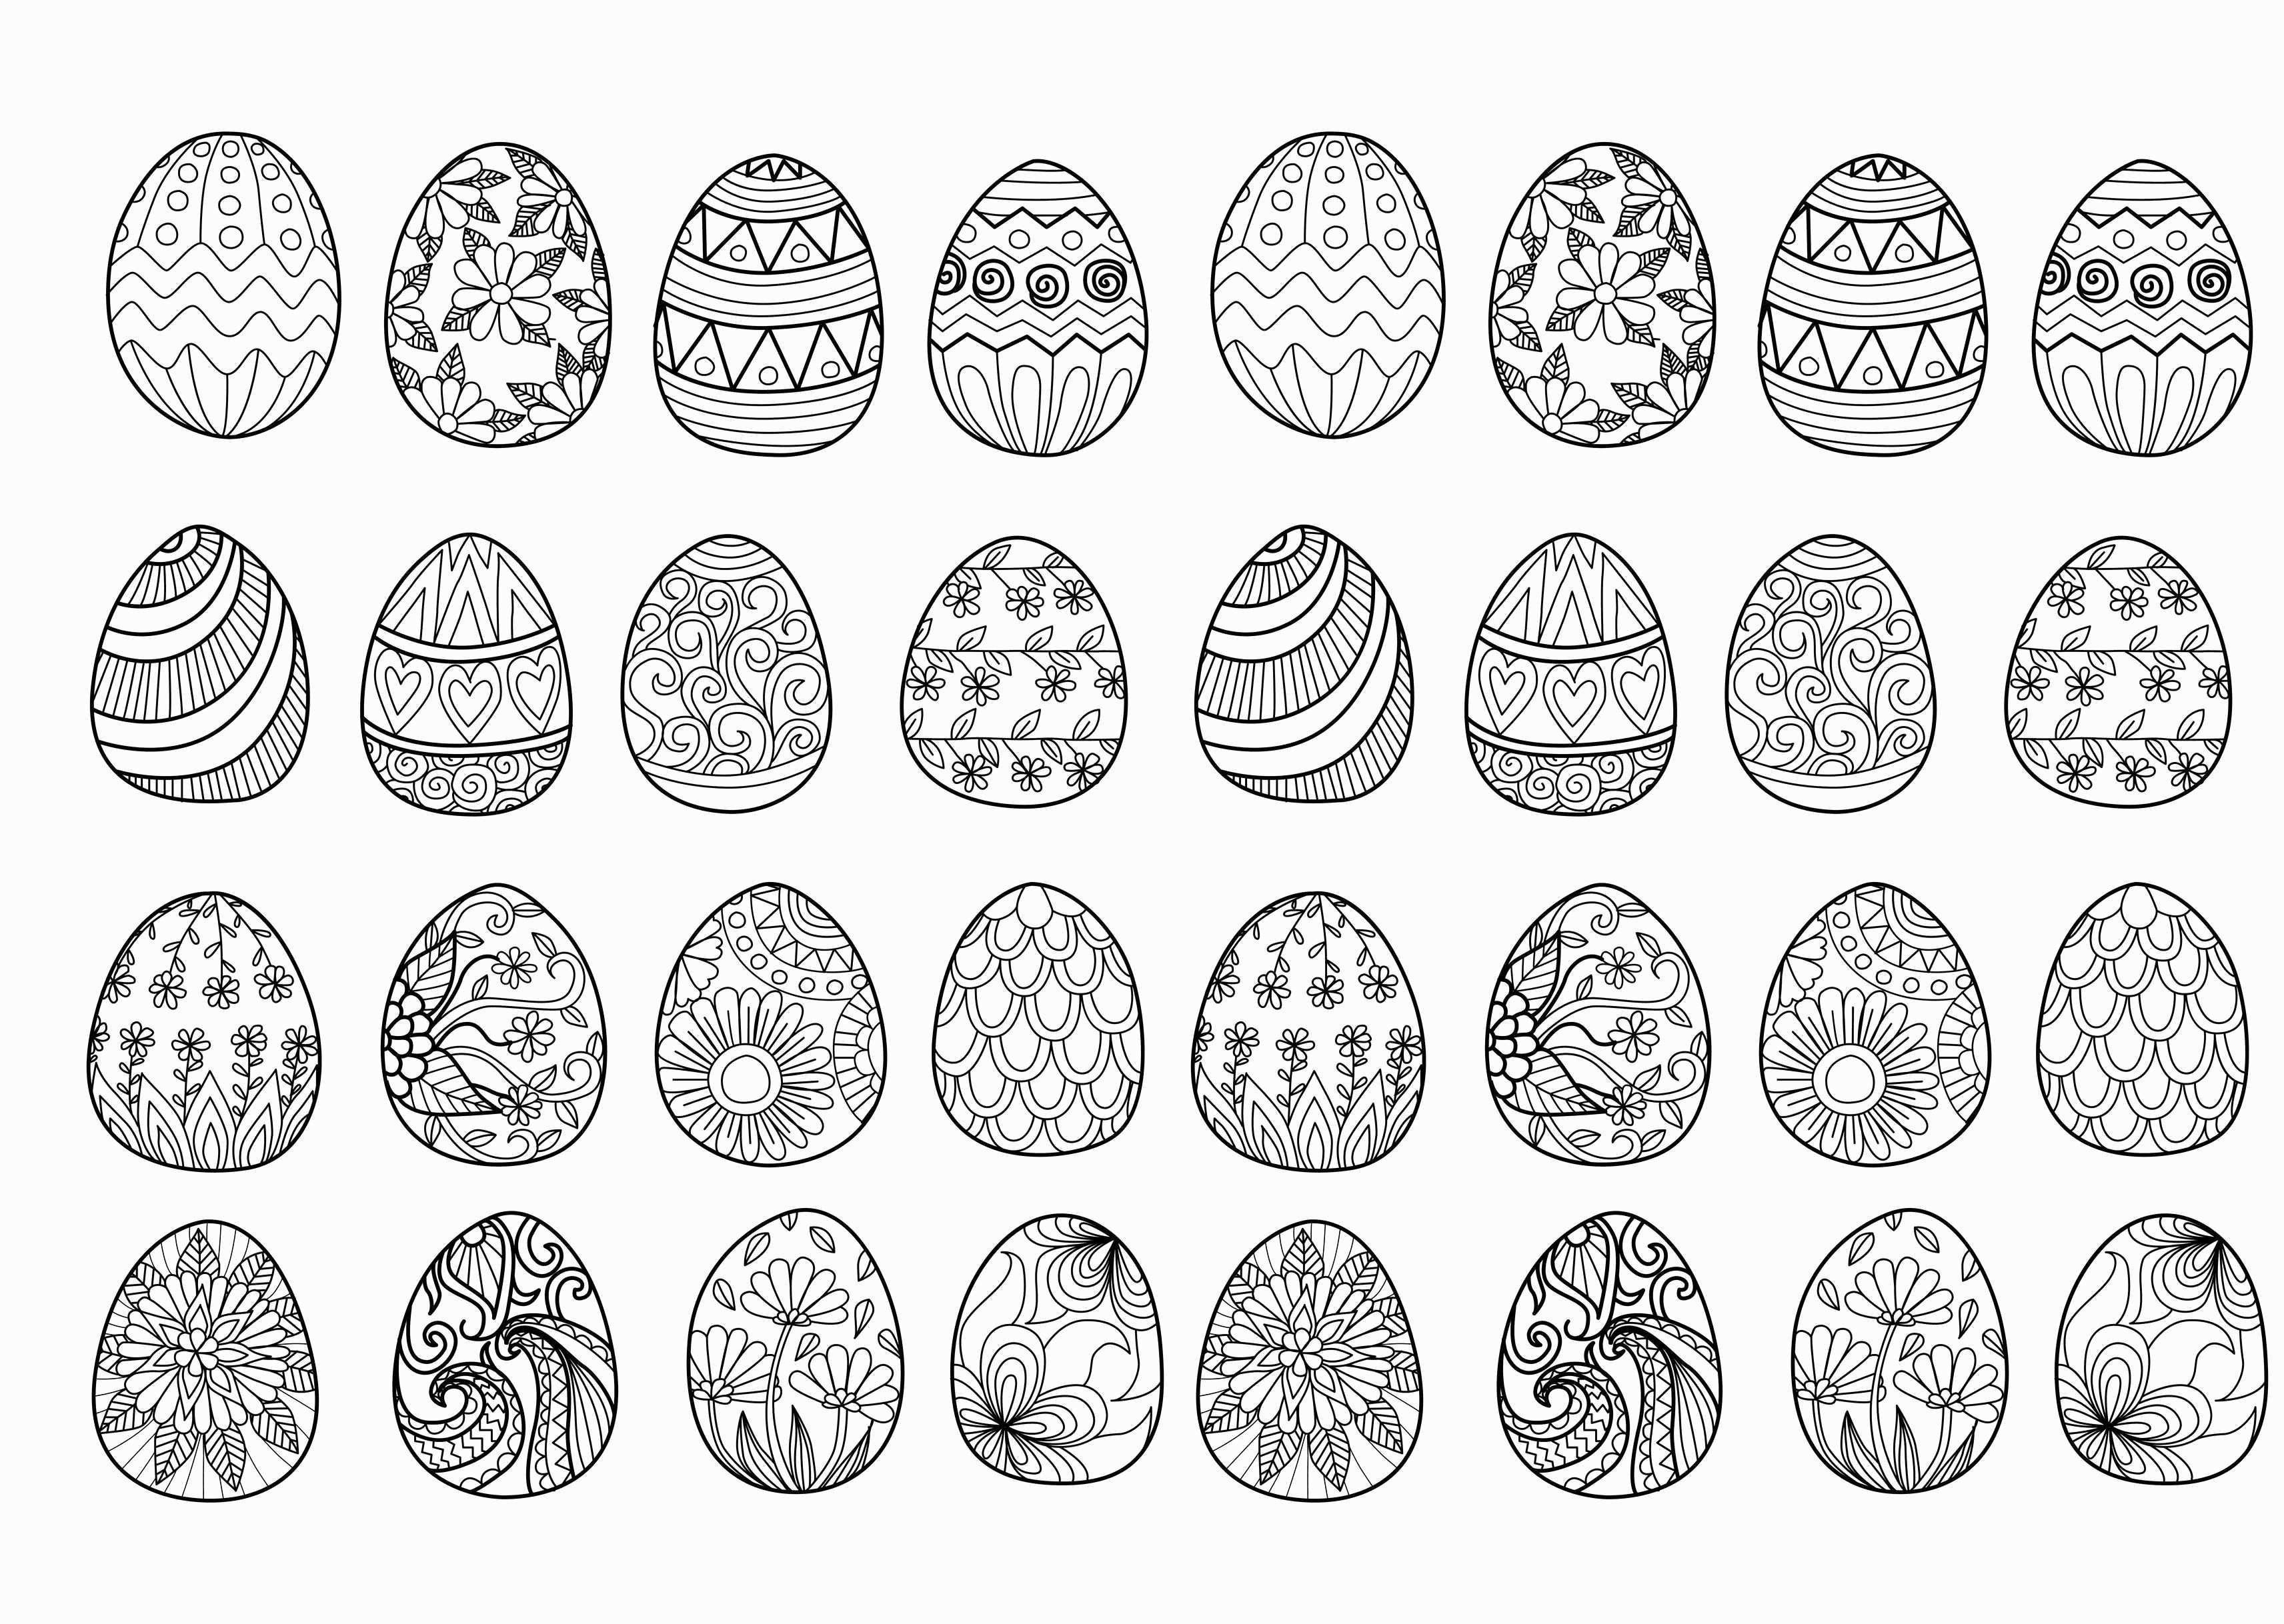 Oriental Trading Coloring Pages Best Of He Is Risen Coloring Page Lovely Dltk Kids Easter Dltk Easter Egg Coloring Pages Coloring Easter Eggs Coloring Eggs